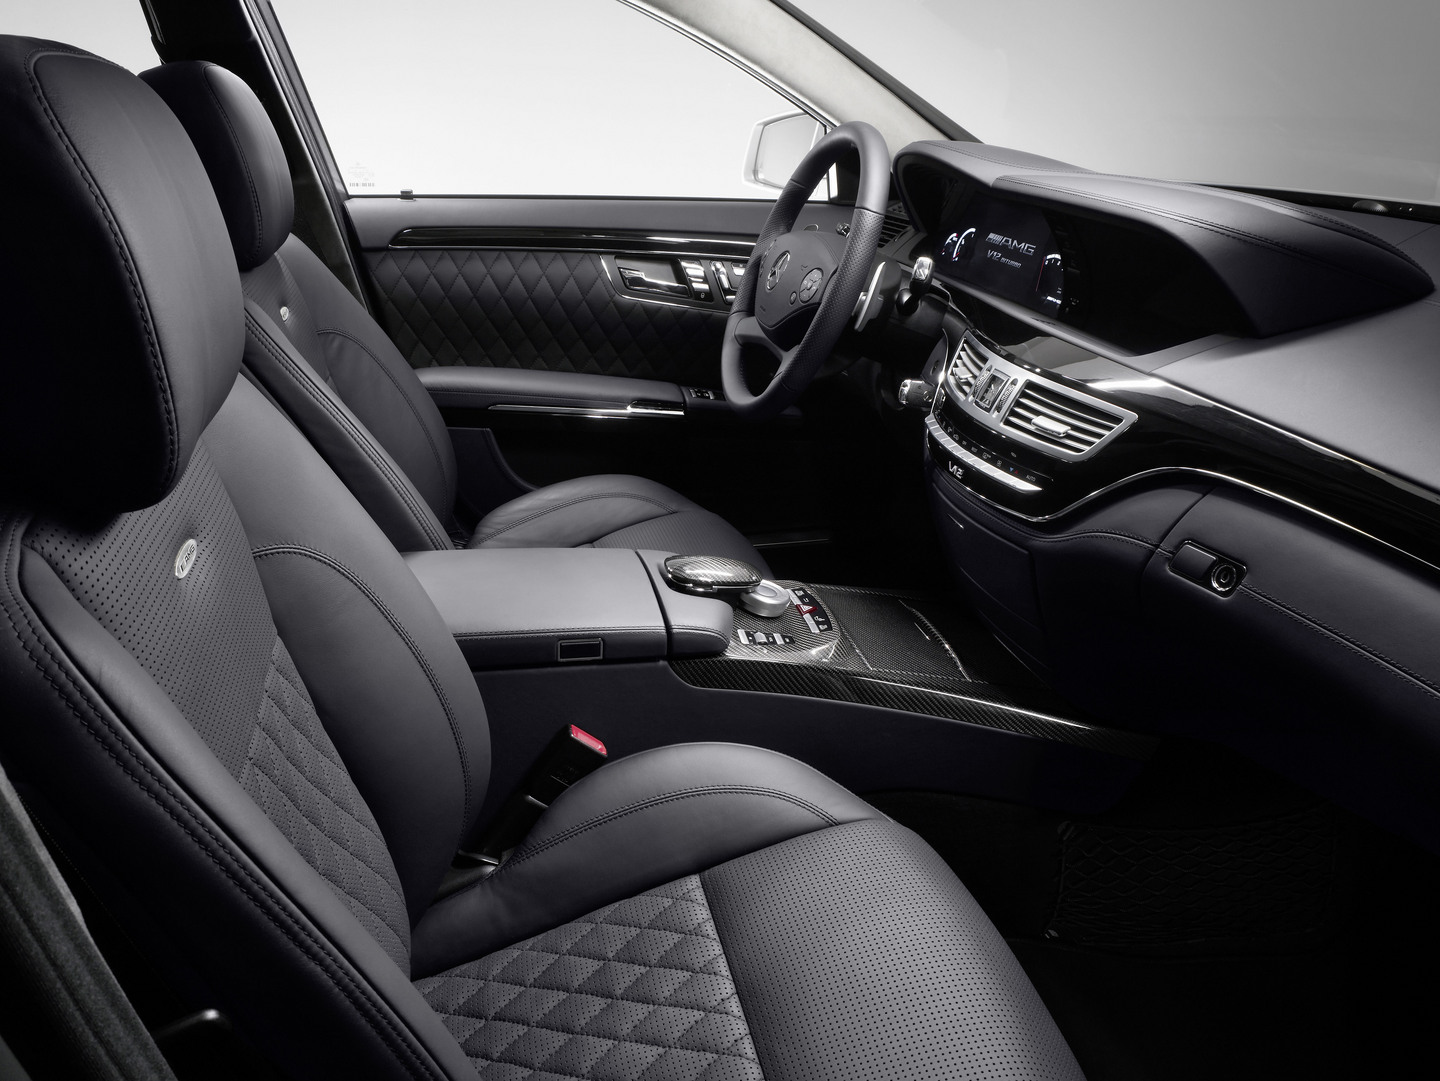 Interieur auto  Mercedes S-klasse AMG Interieur Auto Wallpapers GroenLicht.be